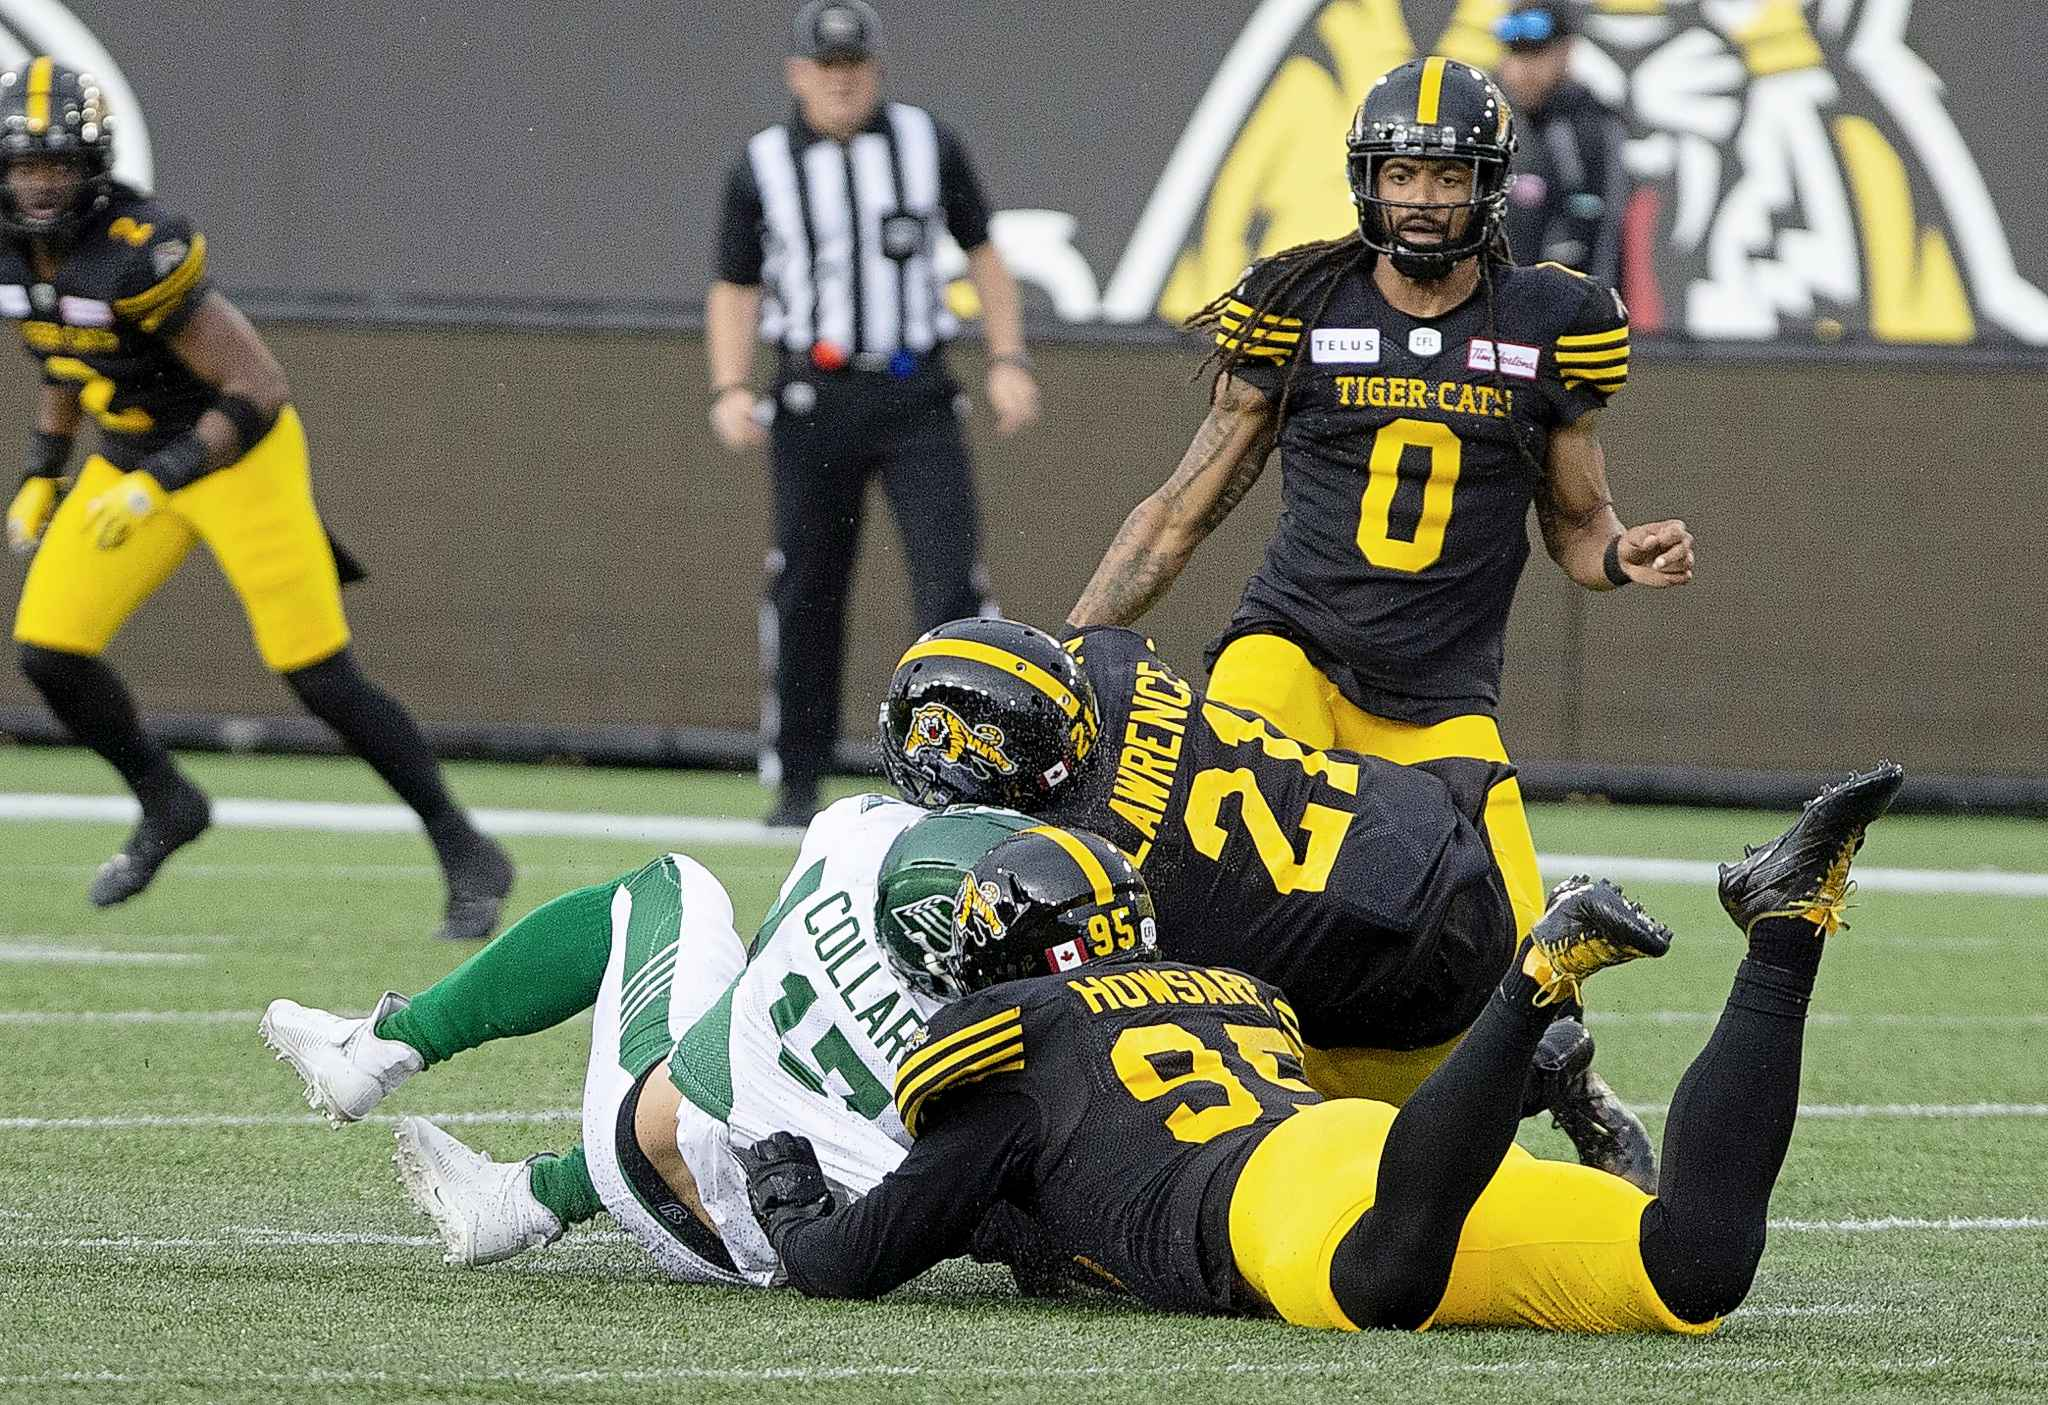 Zach Collaros got a concussion because of this late hit by Simoni Lawrence, who was suspended for two games, while Collaros didn't play again until he joined the Bombers a few weeks ago. (Peter Power / The Canadian Press files)